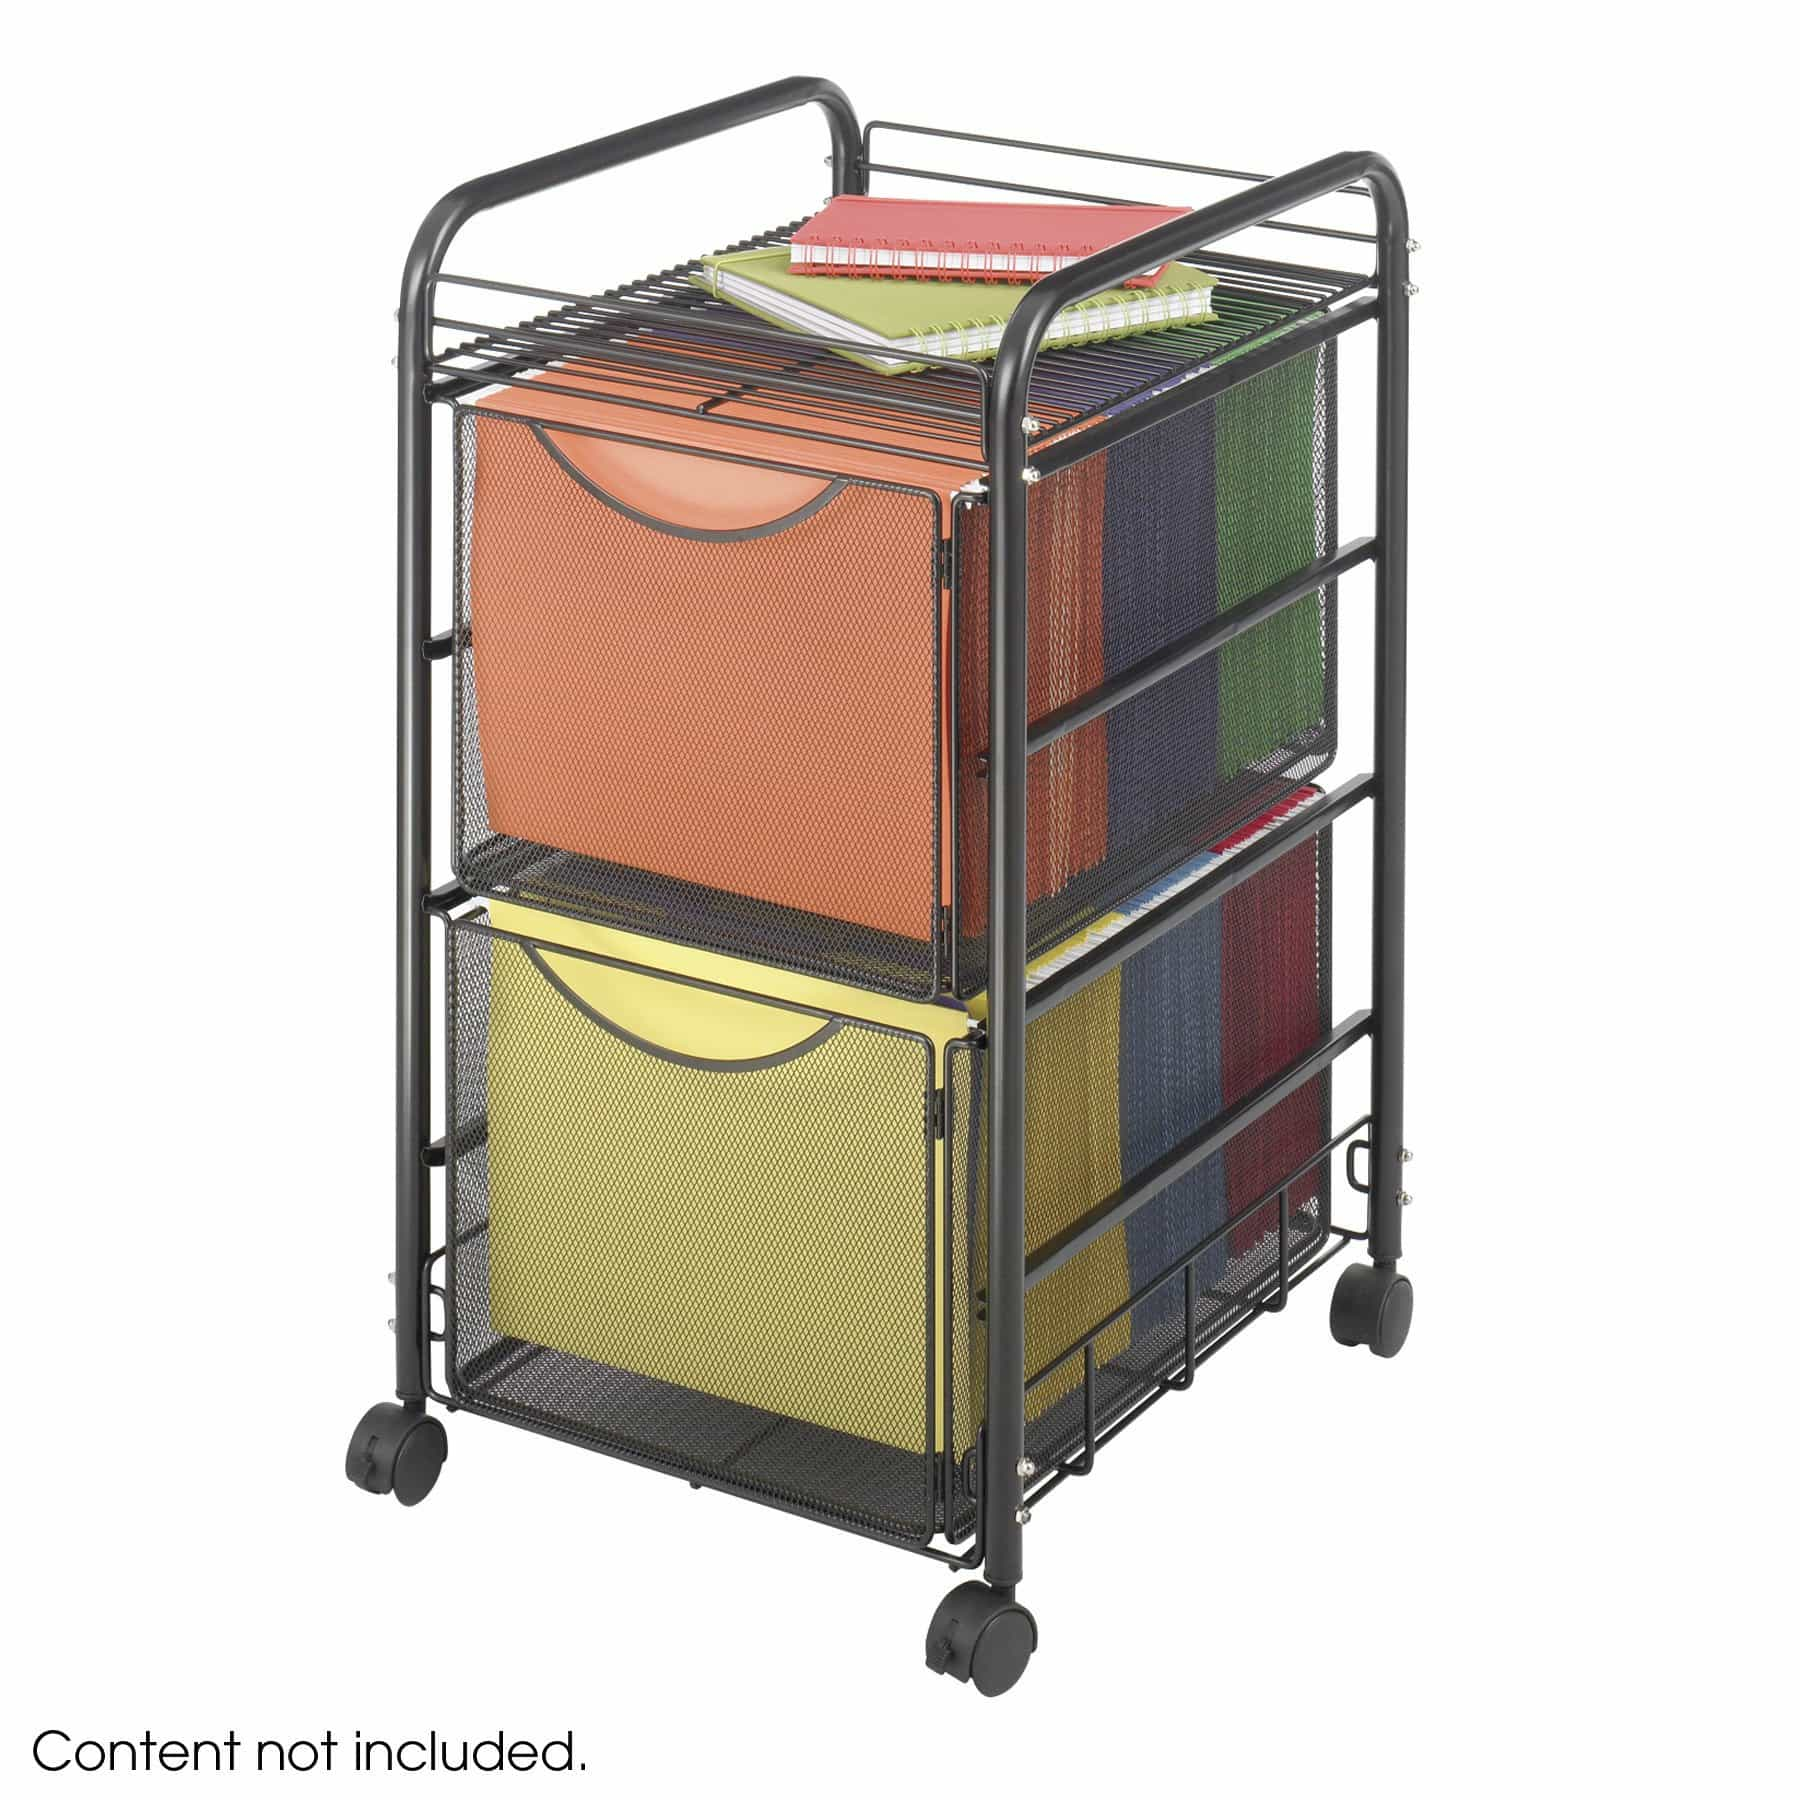 bedinhome - 5212BL Office Furniture Onyx steel mesh frame mobile file cart with 2 File Drawers - Safco - Wire Filing Carts